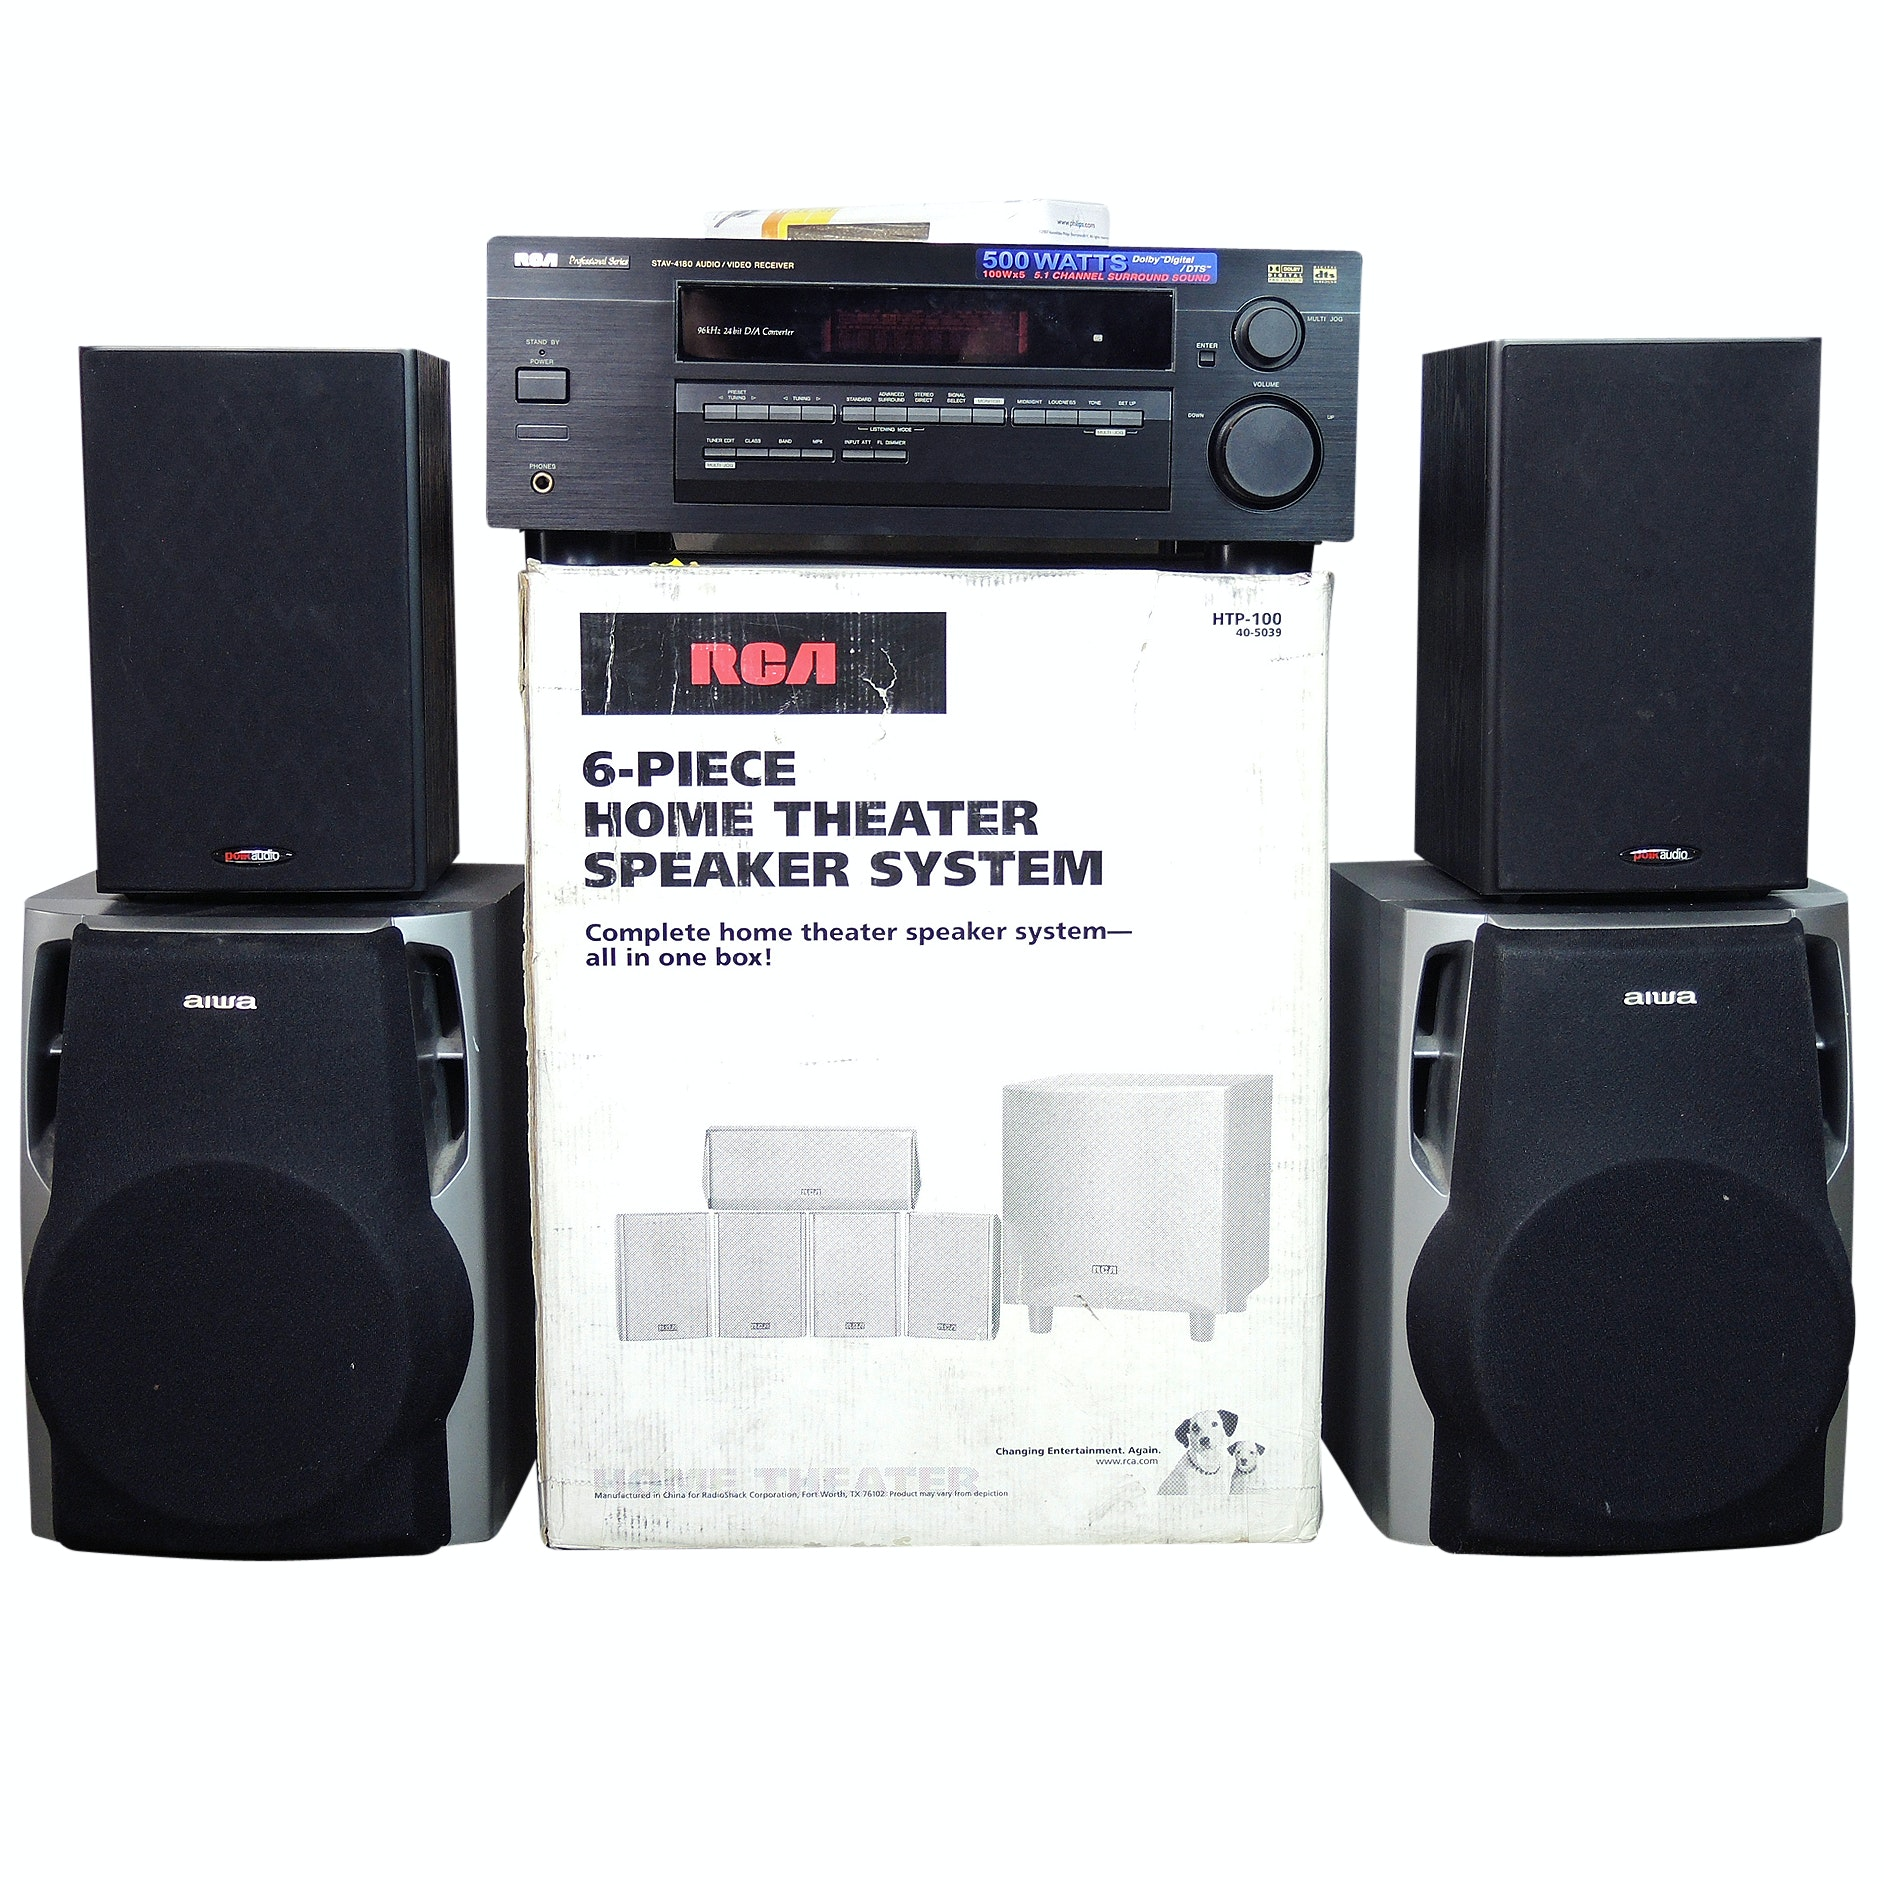 Home Theater Surround Sound Speaker System and Stereo Equipment